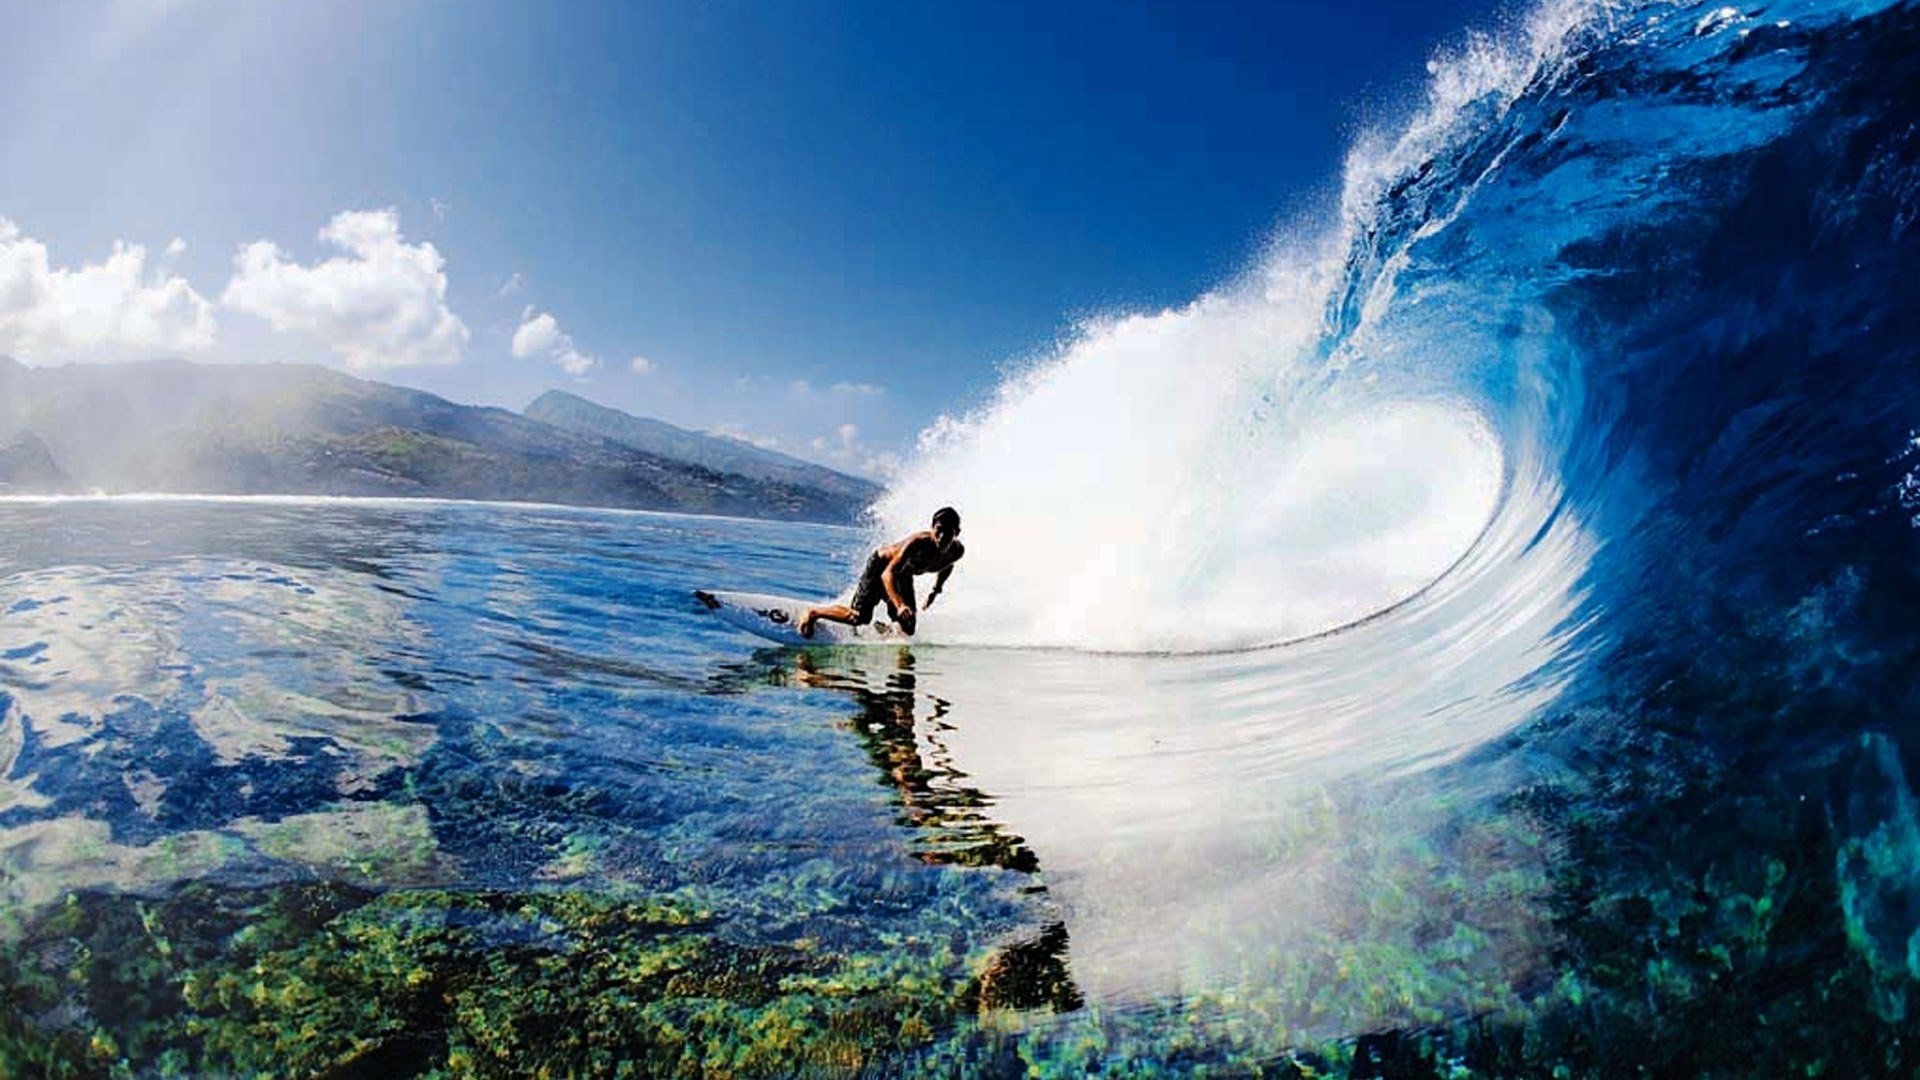 203 Surfing Hd Wallpapers Background Images Wallpaper Abyss